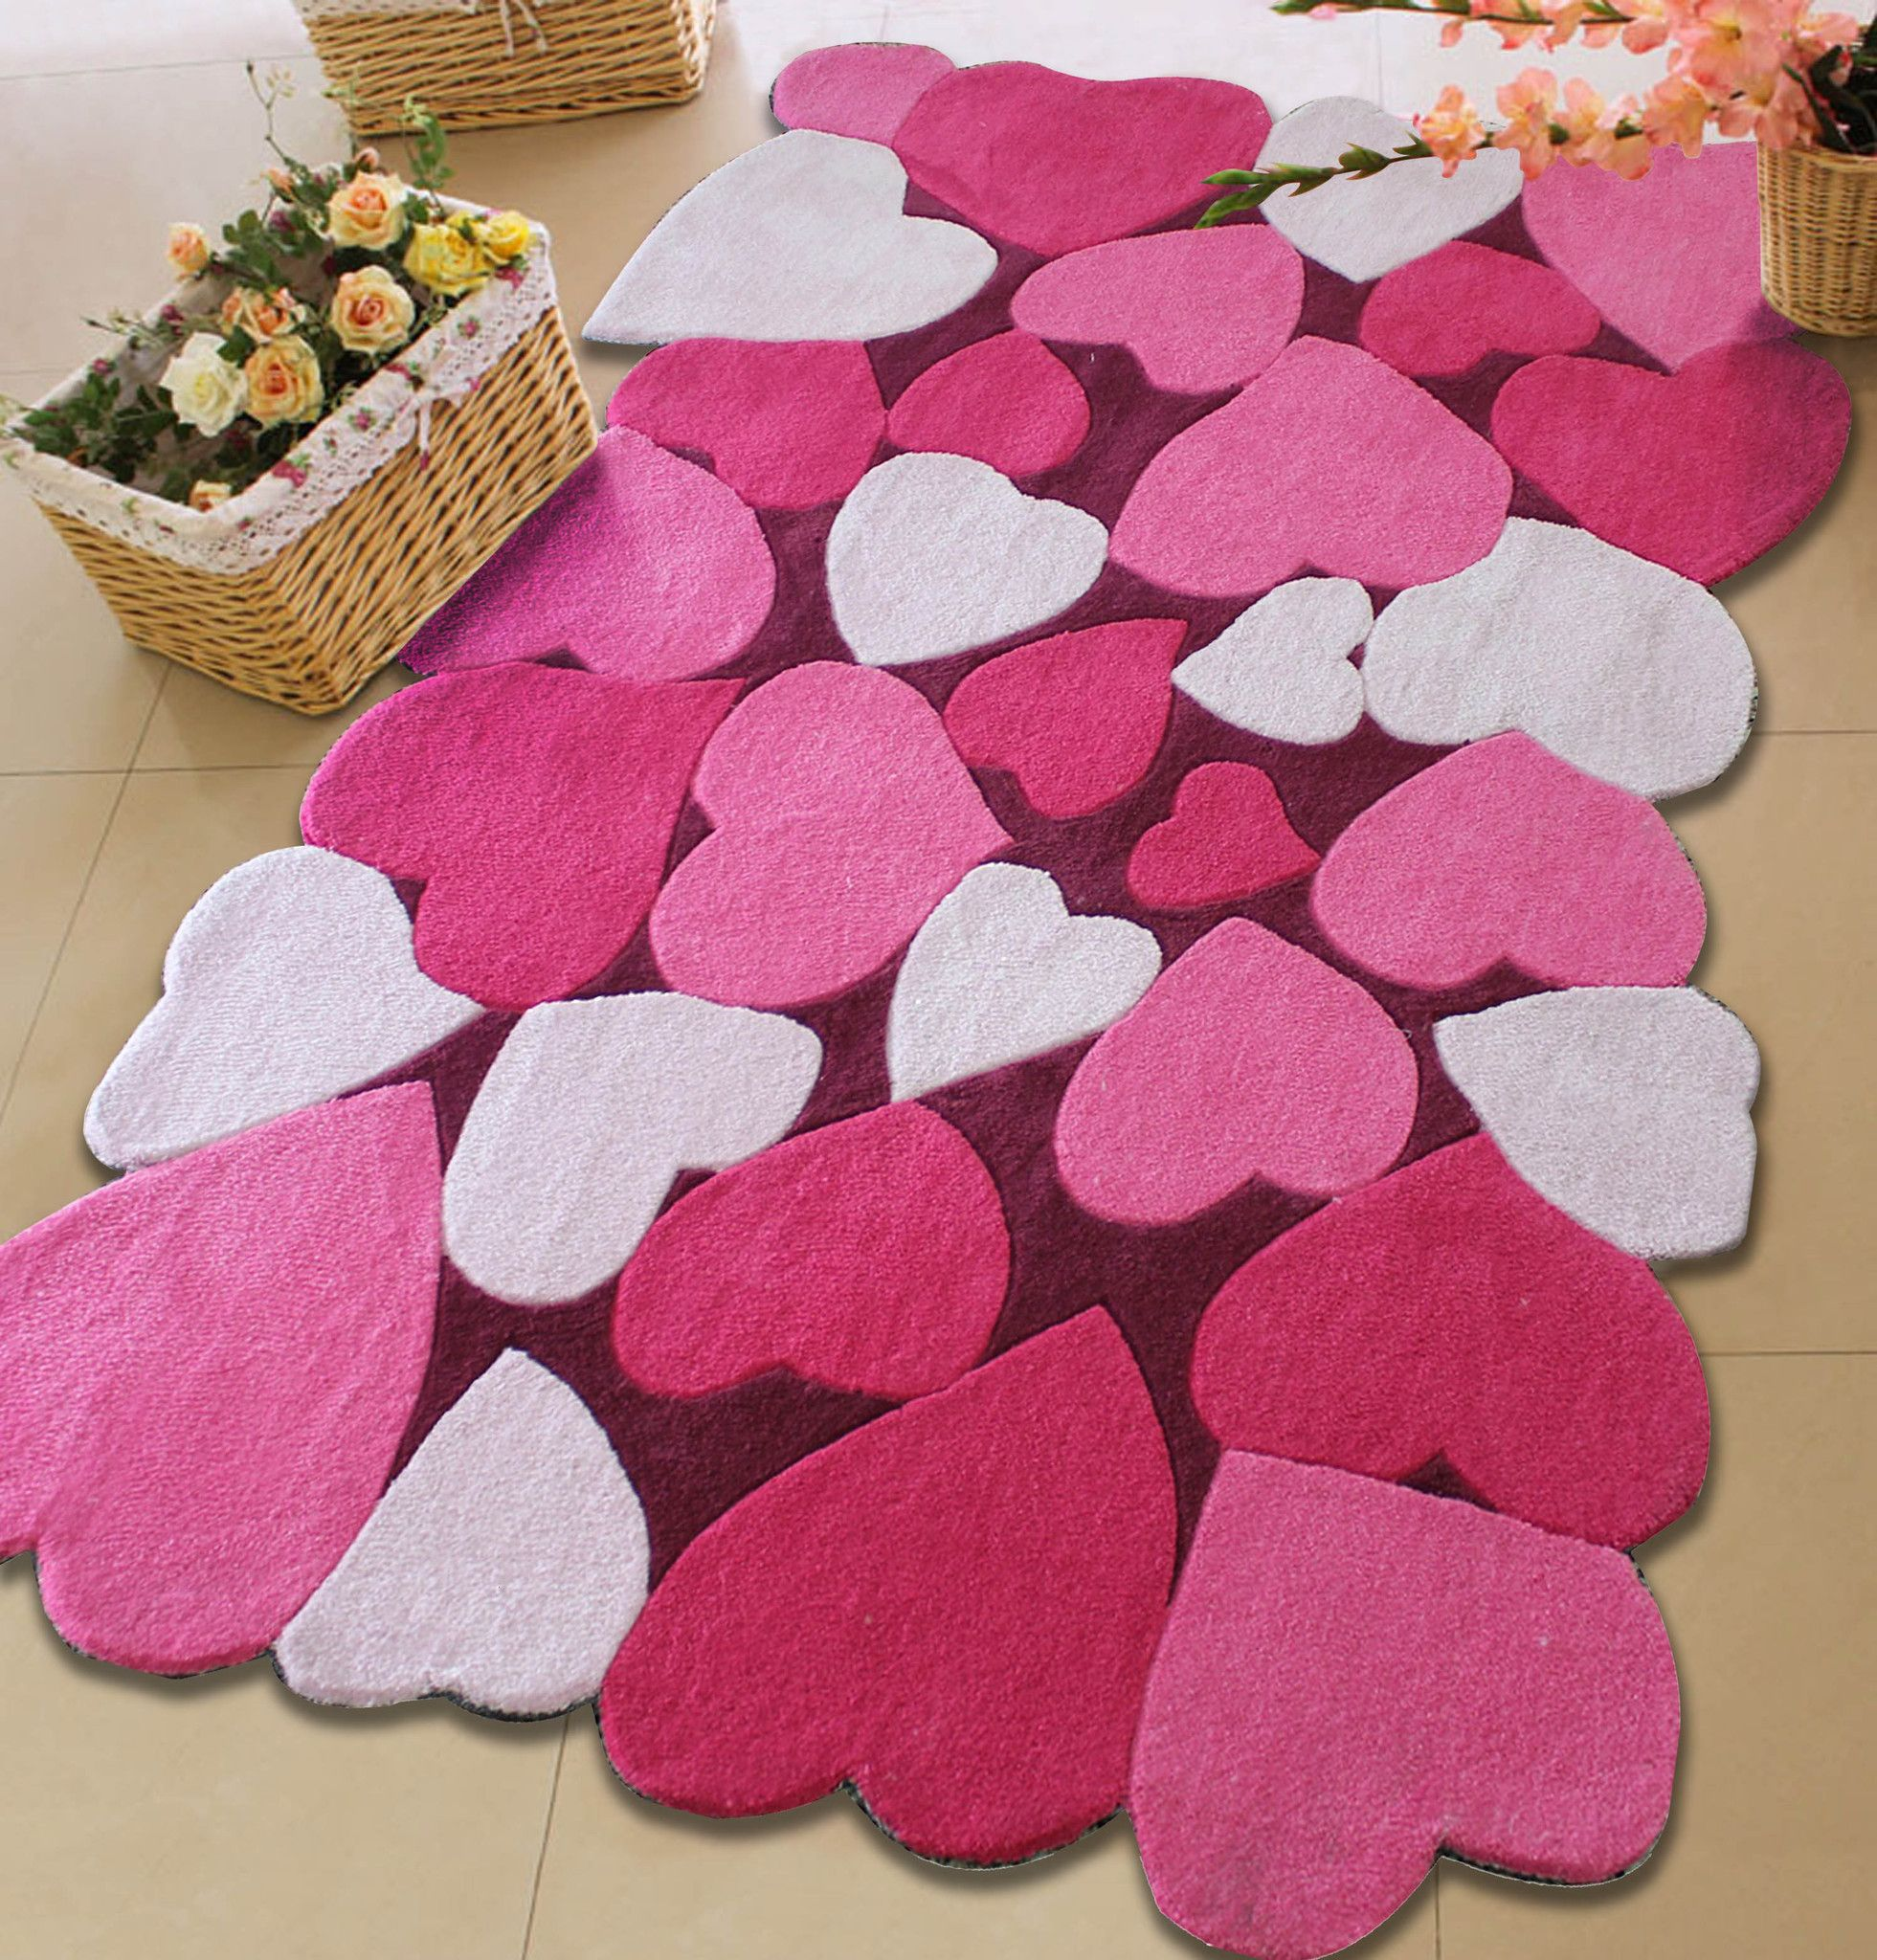 4 x 6 ft Kids All Pink Bedroom Area Rug with Hearts Patterns